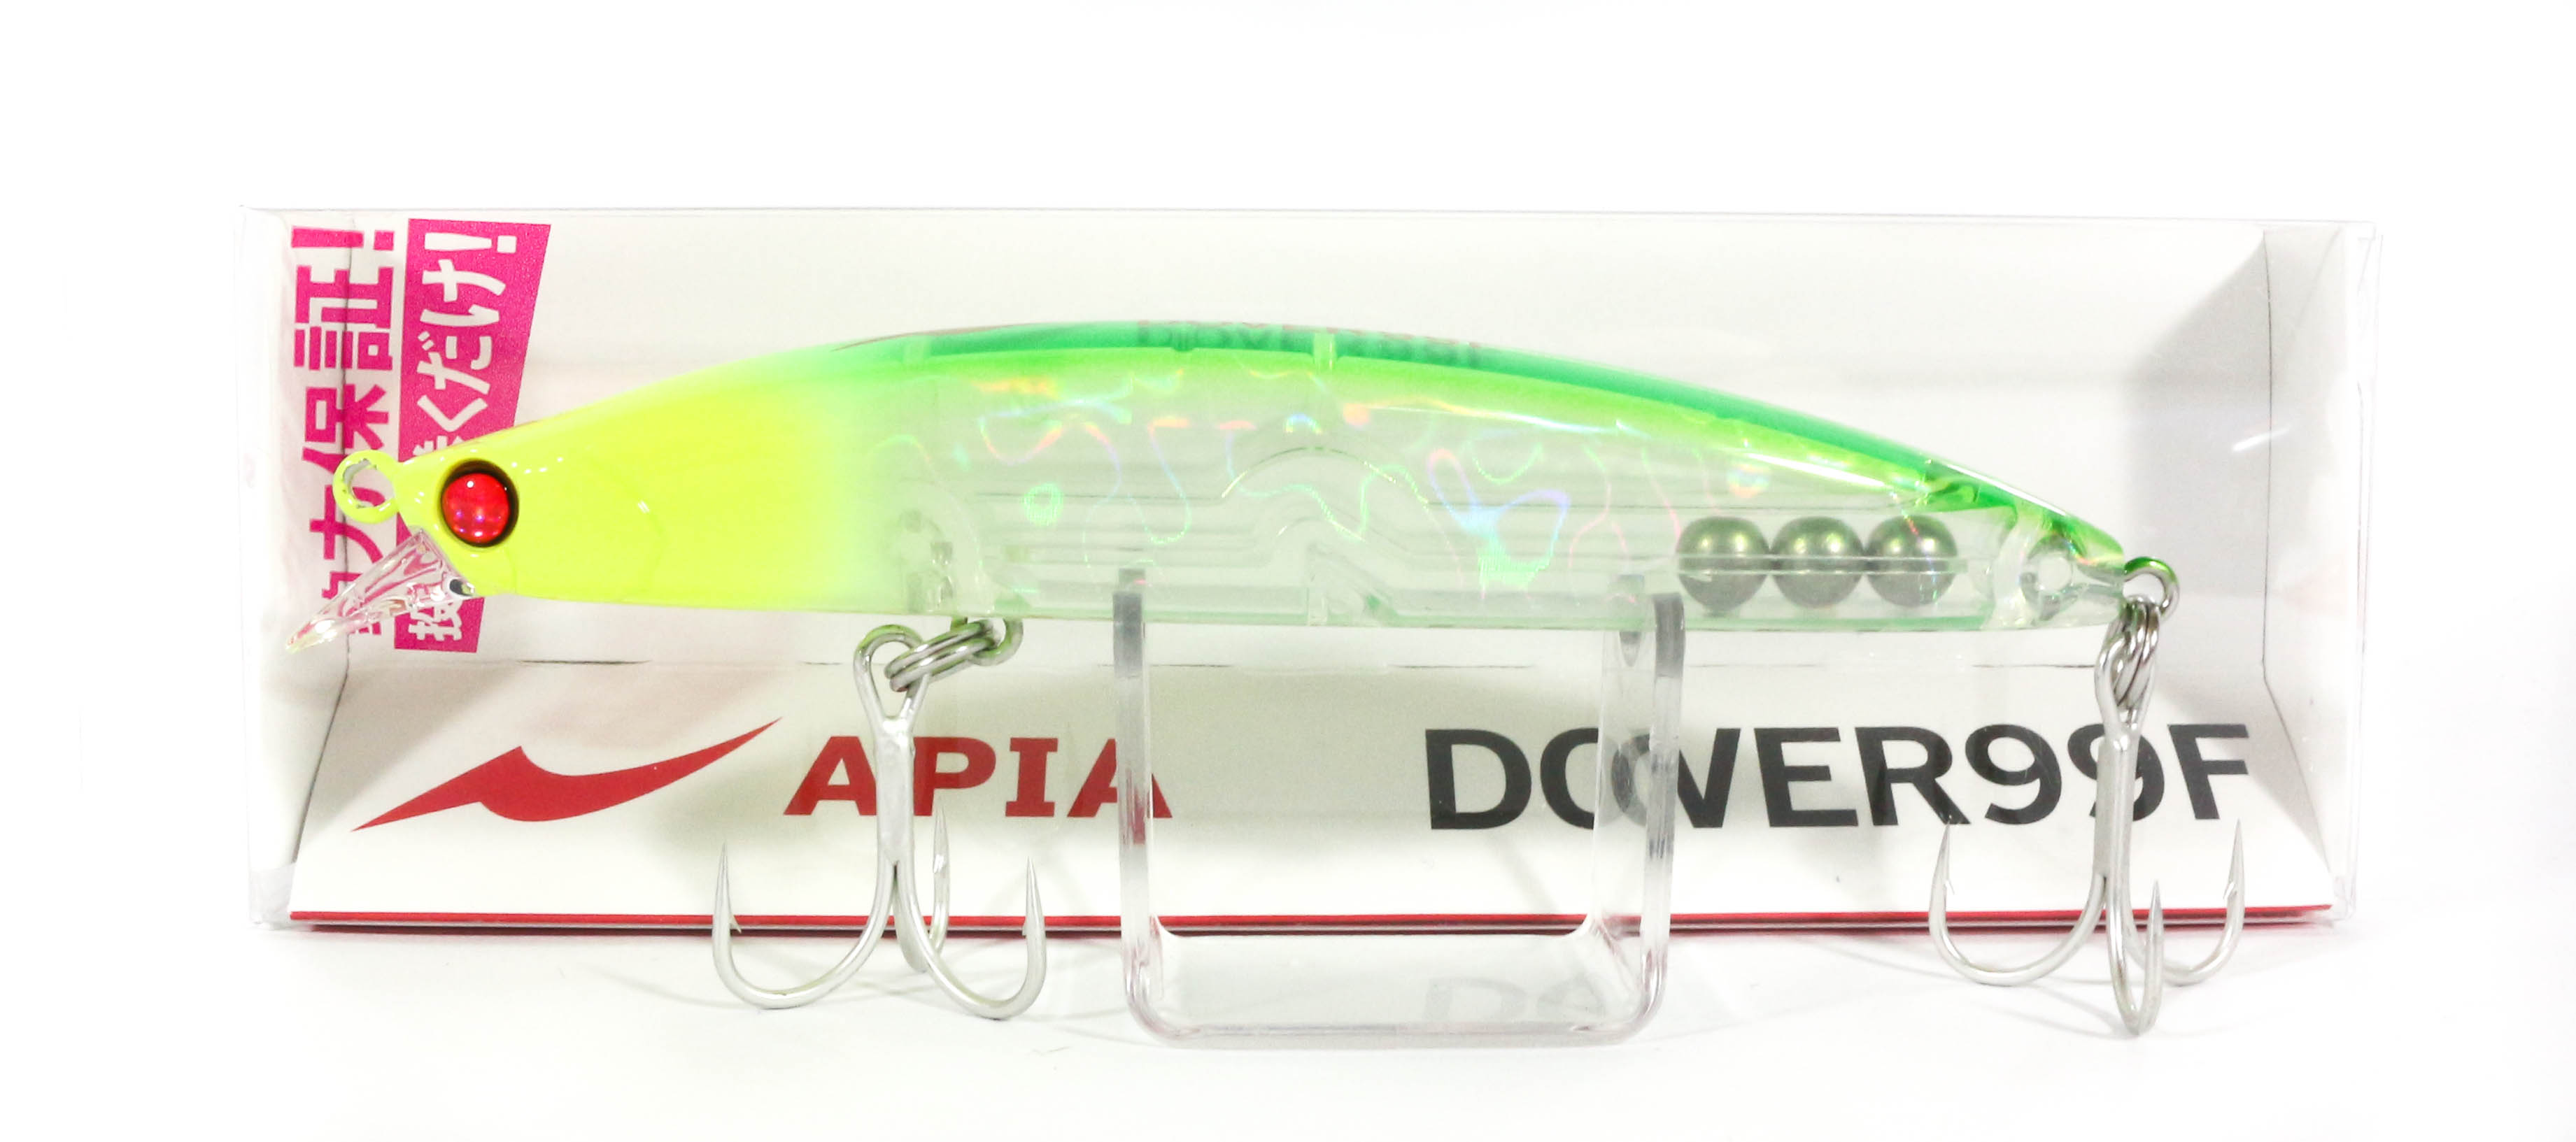 Apia Dover 99 F Floating Lure 11 (1475)